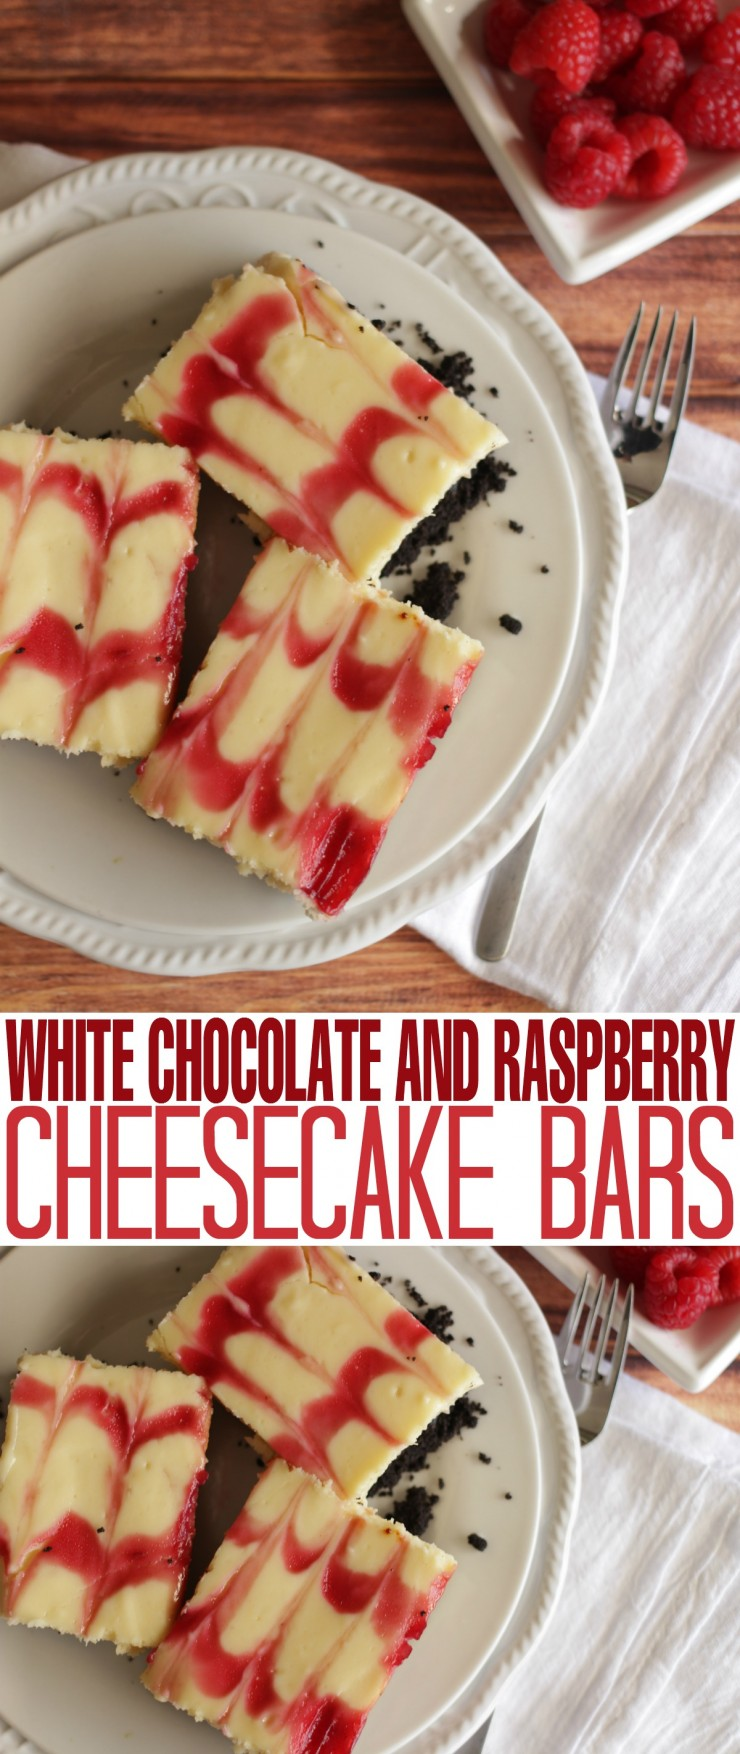 These White Chocolate and Raspberry Cheesecake Bars are a rich dessert made with fresh raspberries!